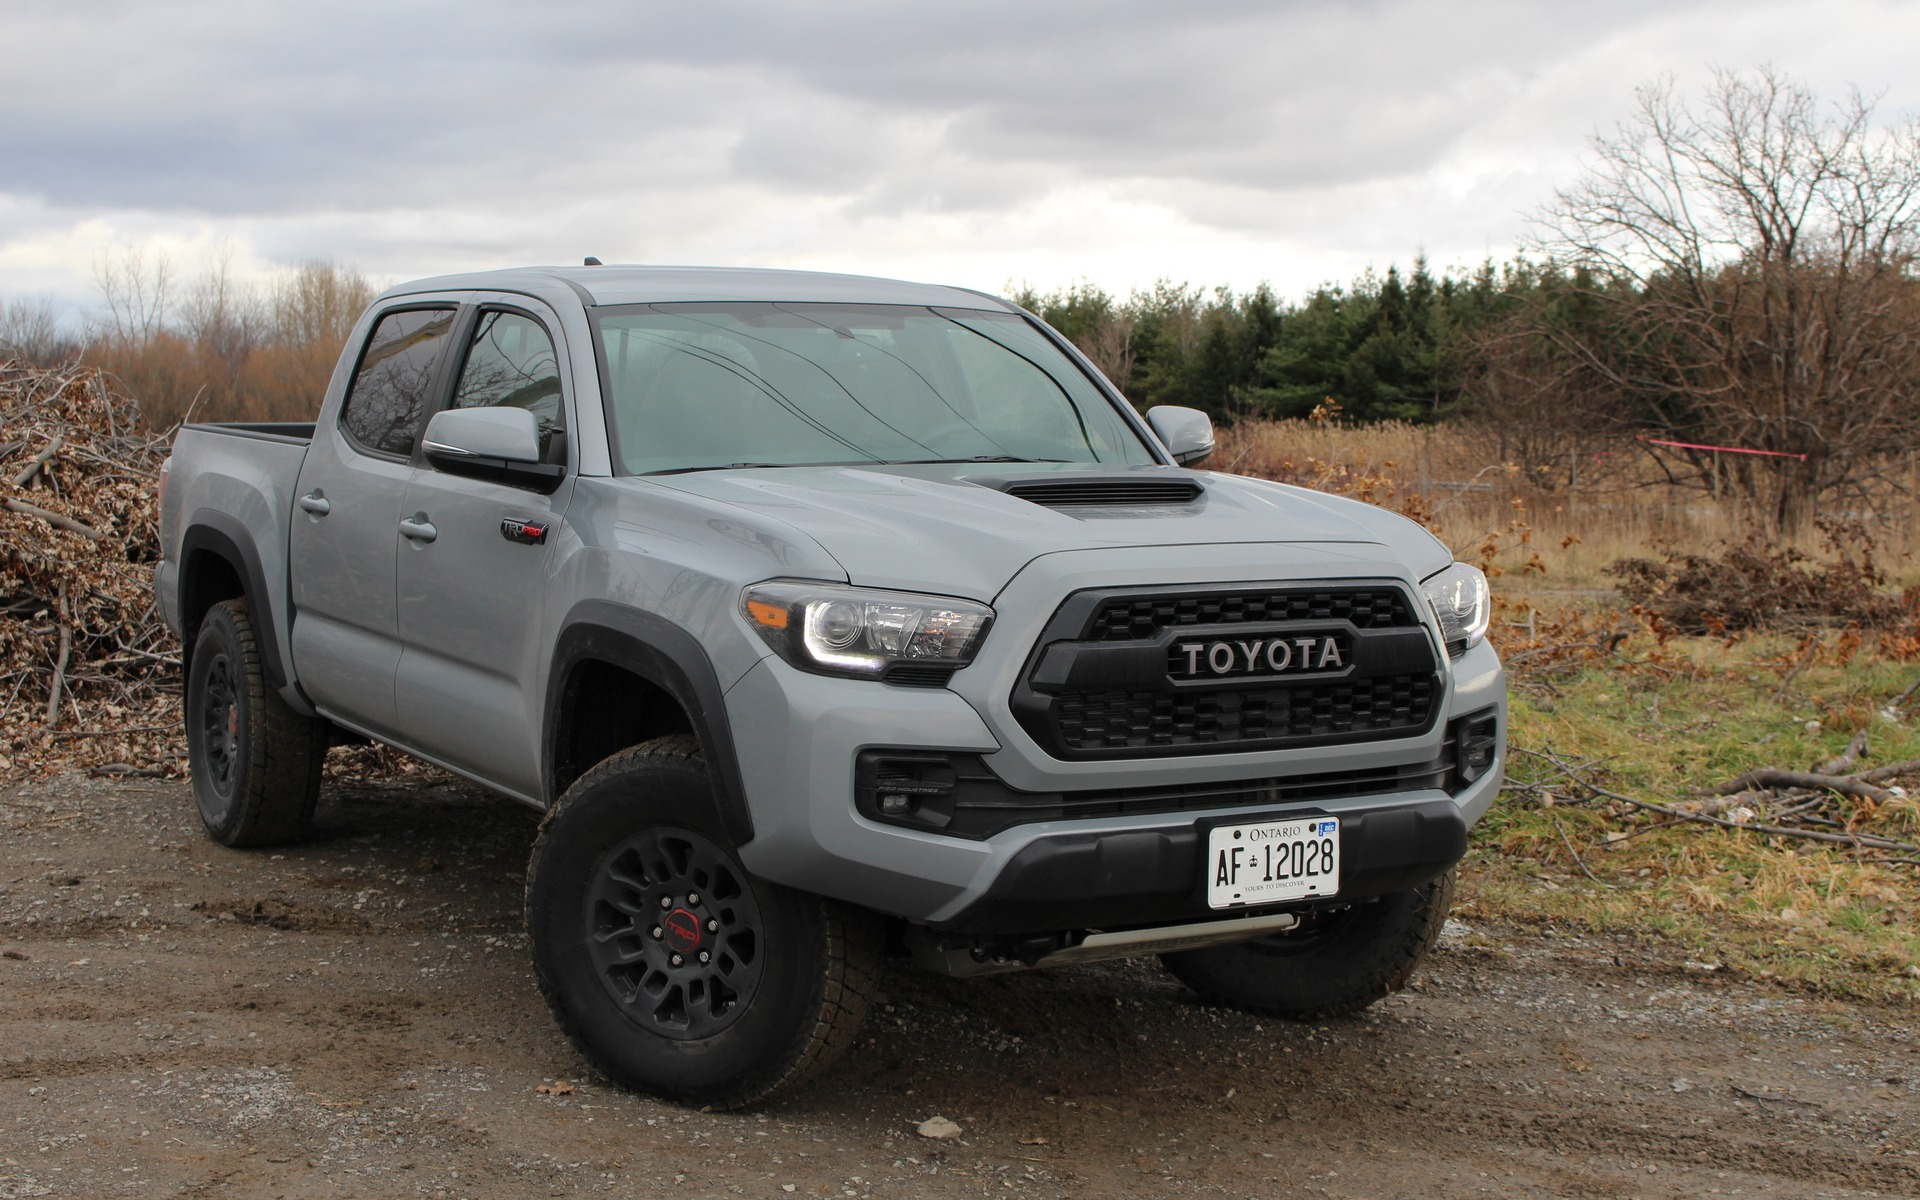 2017 Toyota Tacoma Towing Capacity >> 2017 Toyota Tacoma TRD PRO: Where do You Want to Go Today? - The Car Guide